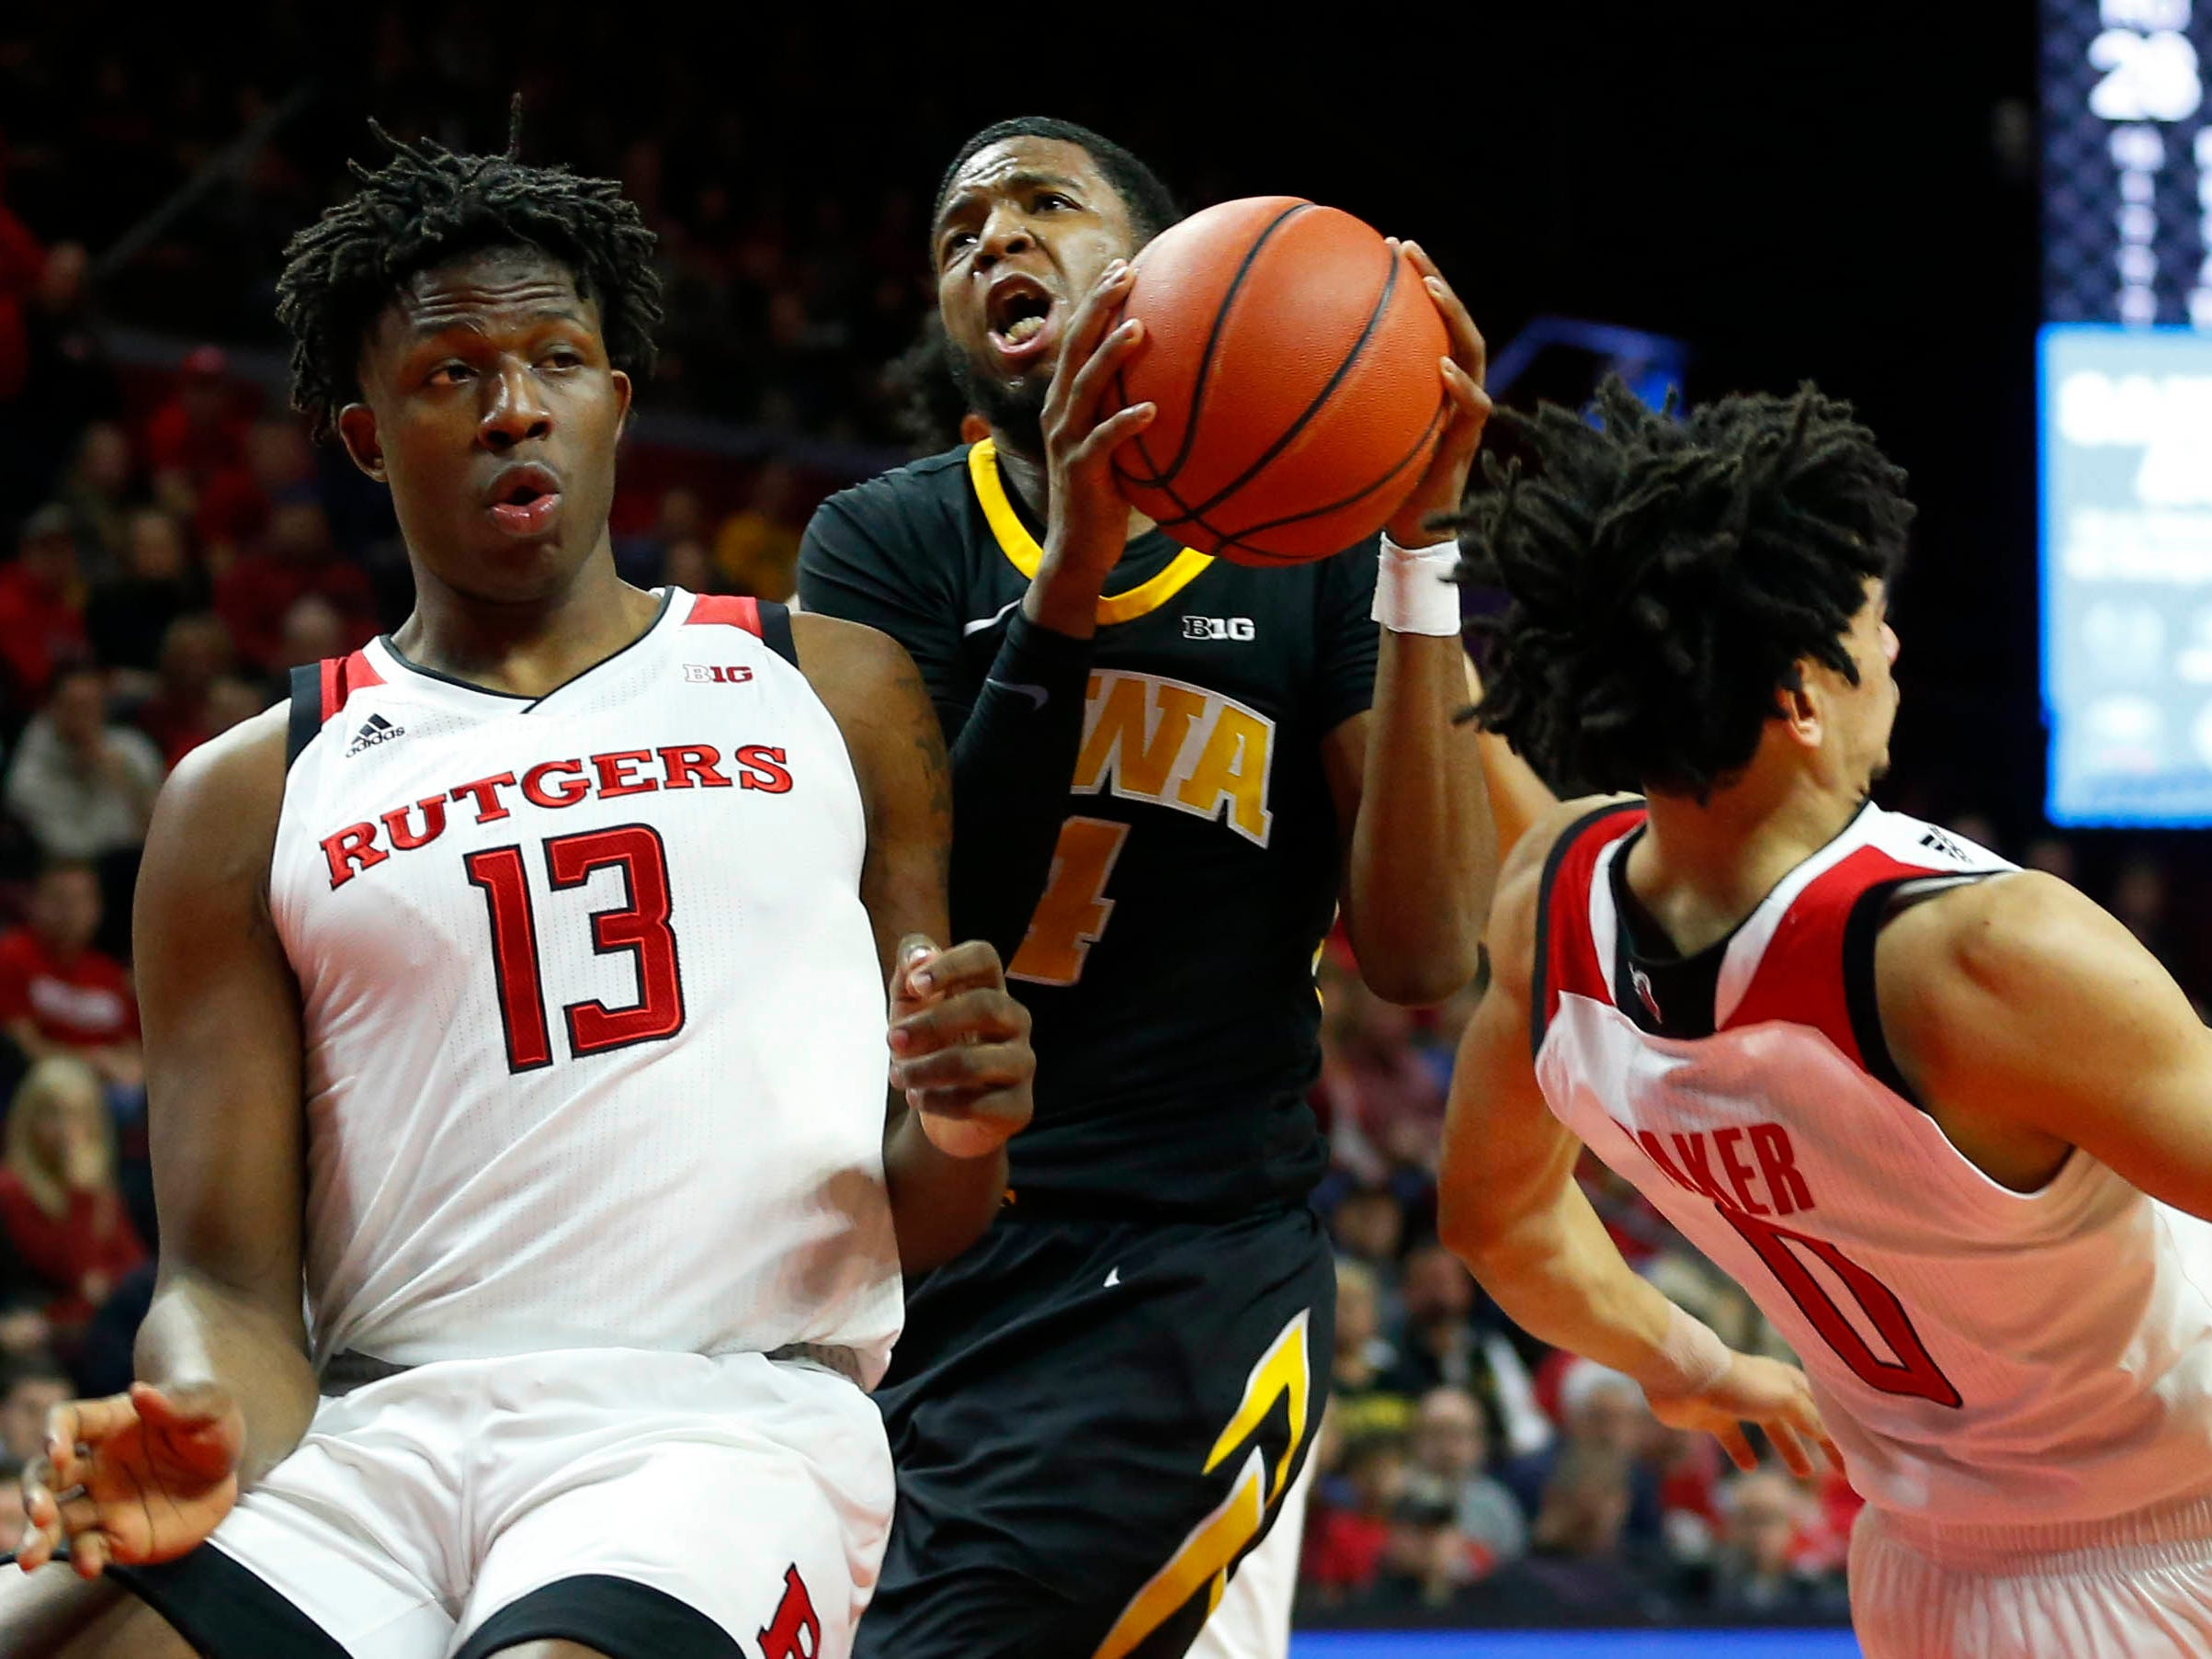 Rutgers Scarlet Knights forward Shaq Carter (13) defends with guard Geo Baker (0) who is called for a foul against Iowa Hawkeyes guard Isaiah Moss (4) during the first half at Rutgers Athletic Center (RAC). Mandatory Credit: Noah K. Murray-USA TODAY Sports